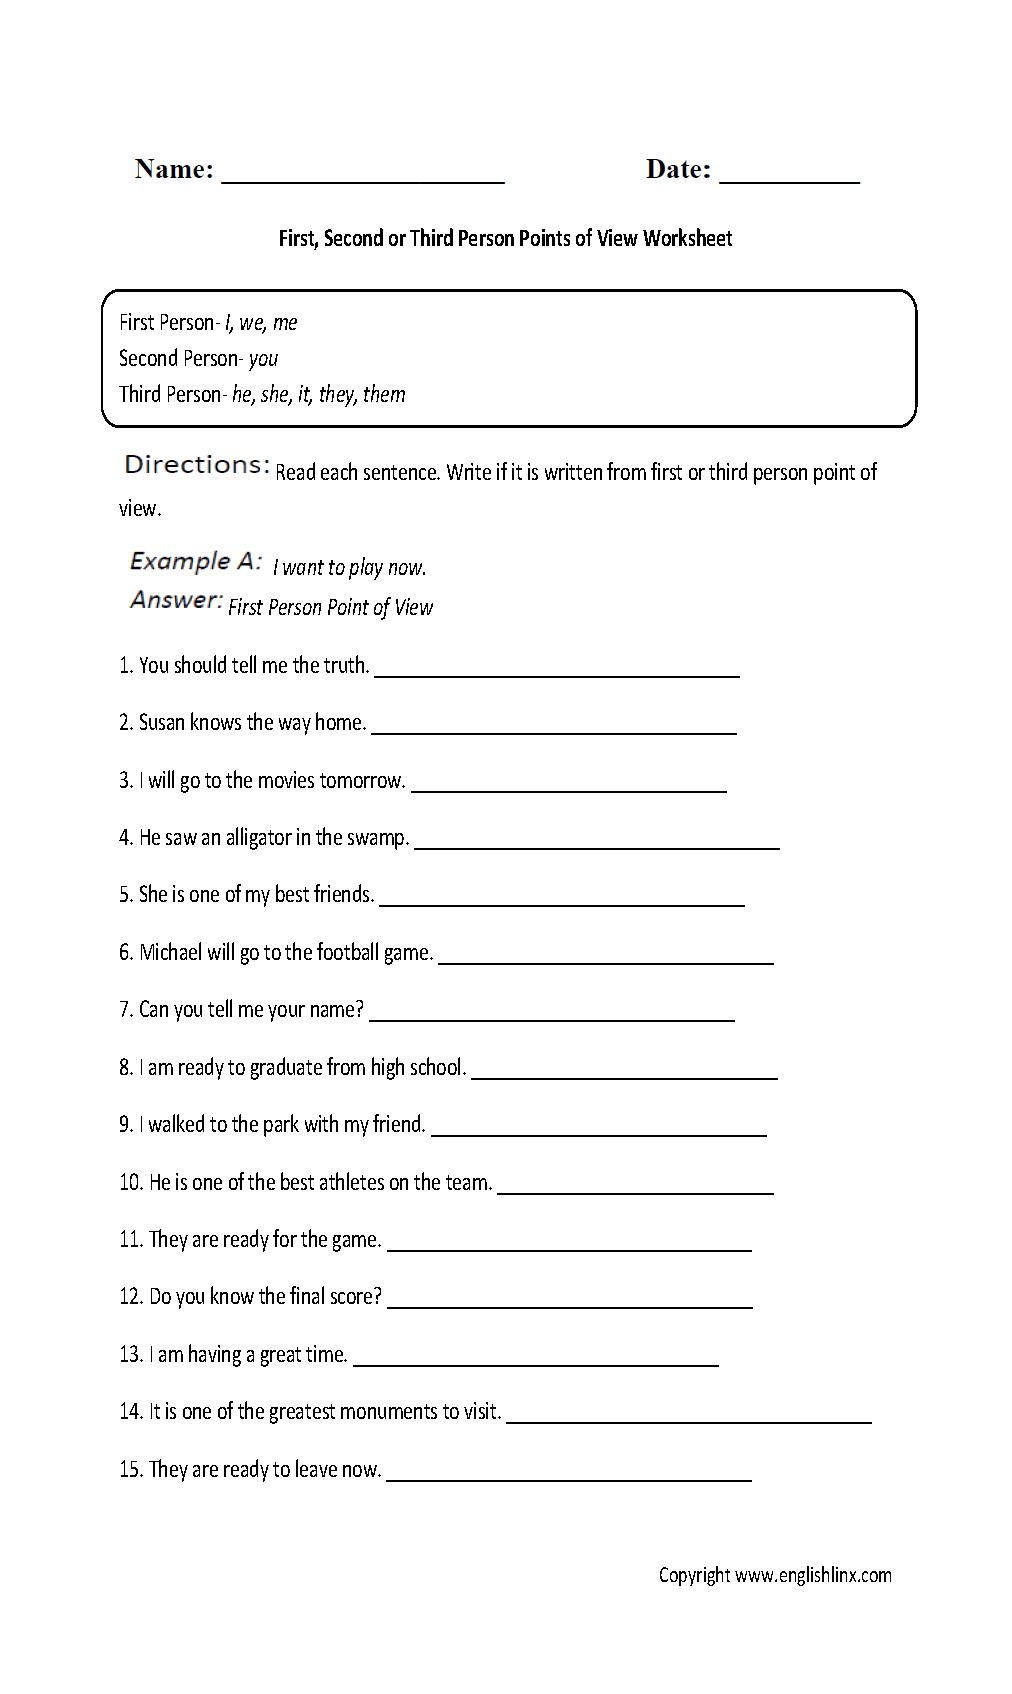 Weirdmailus  Pleasant Englishlinxcom  Point Of View Worksheets With Heavenly Point Of View Worksheet With Awesome Mixture And Solution Worksheets Also Free Printable Subject Verb Agreement Worksheets In Addition Letter M Handwriting Worksheet And  Digit By  Digit Division Worksheets As Well As Multiplication Games Worksheets For Third Grade Additionally Turkey Math Worksheet From Englishlinxcom With Weirdmailus  Heavenly Englishlinxcom  Point Of View Worksheets With Awesome Point Of View Worksheet And Pleasant Mixture And Solution Worksheets Also Free Printable Subject Verb Agreement Worksheets In Addition Letter M Handwriting Worksheet From Englishlinxcom